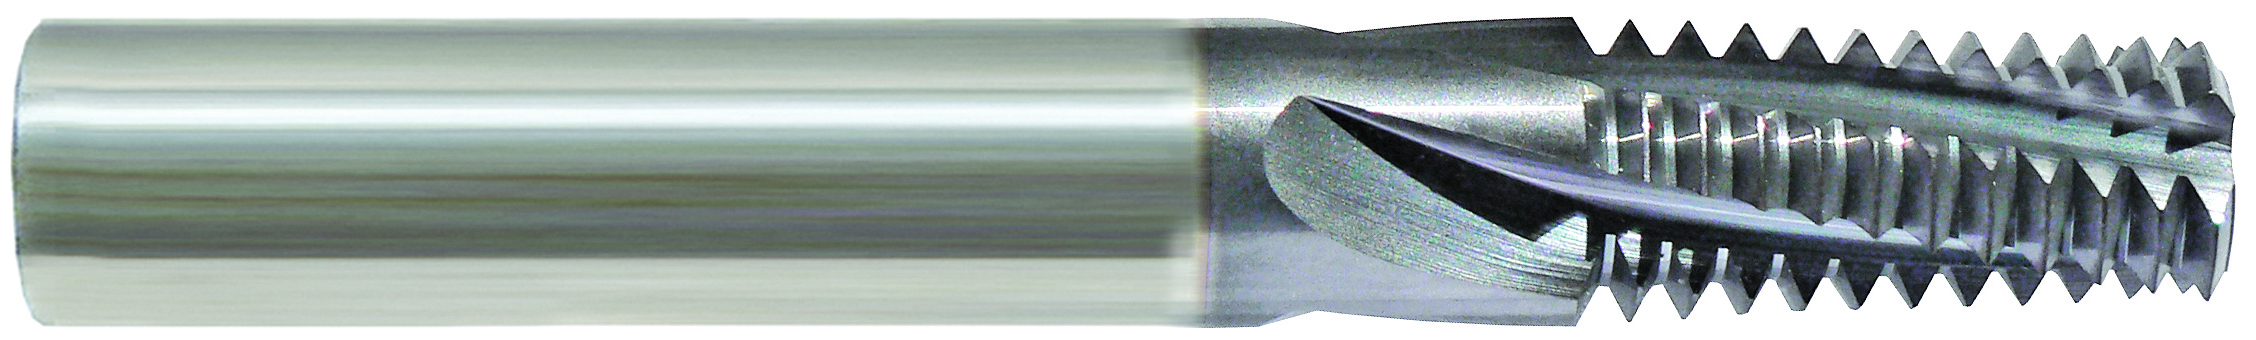 M3.5-0.60 MC SOLID CARBIDE THREAD MILL